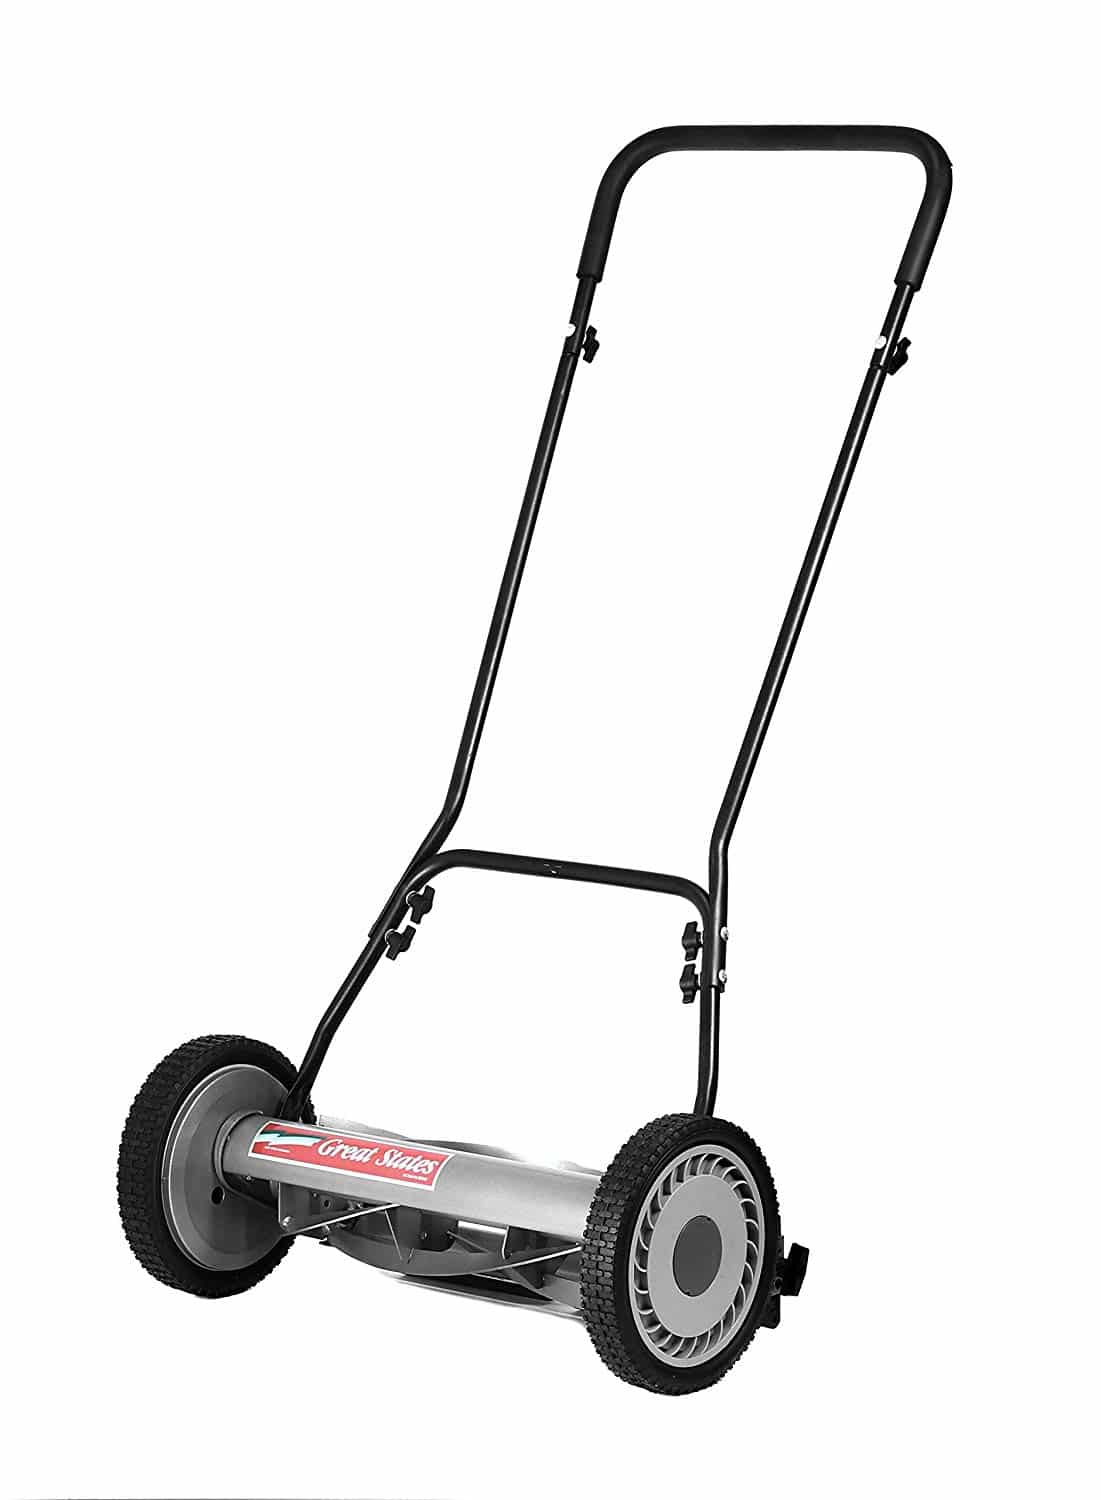 Great States 5-Blade Push Reel Lawn Mower